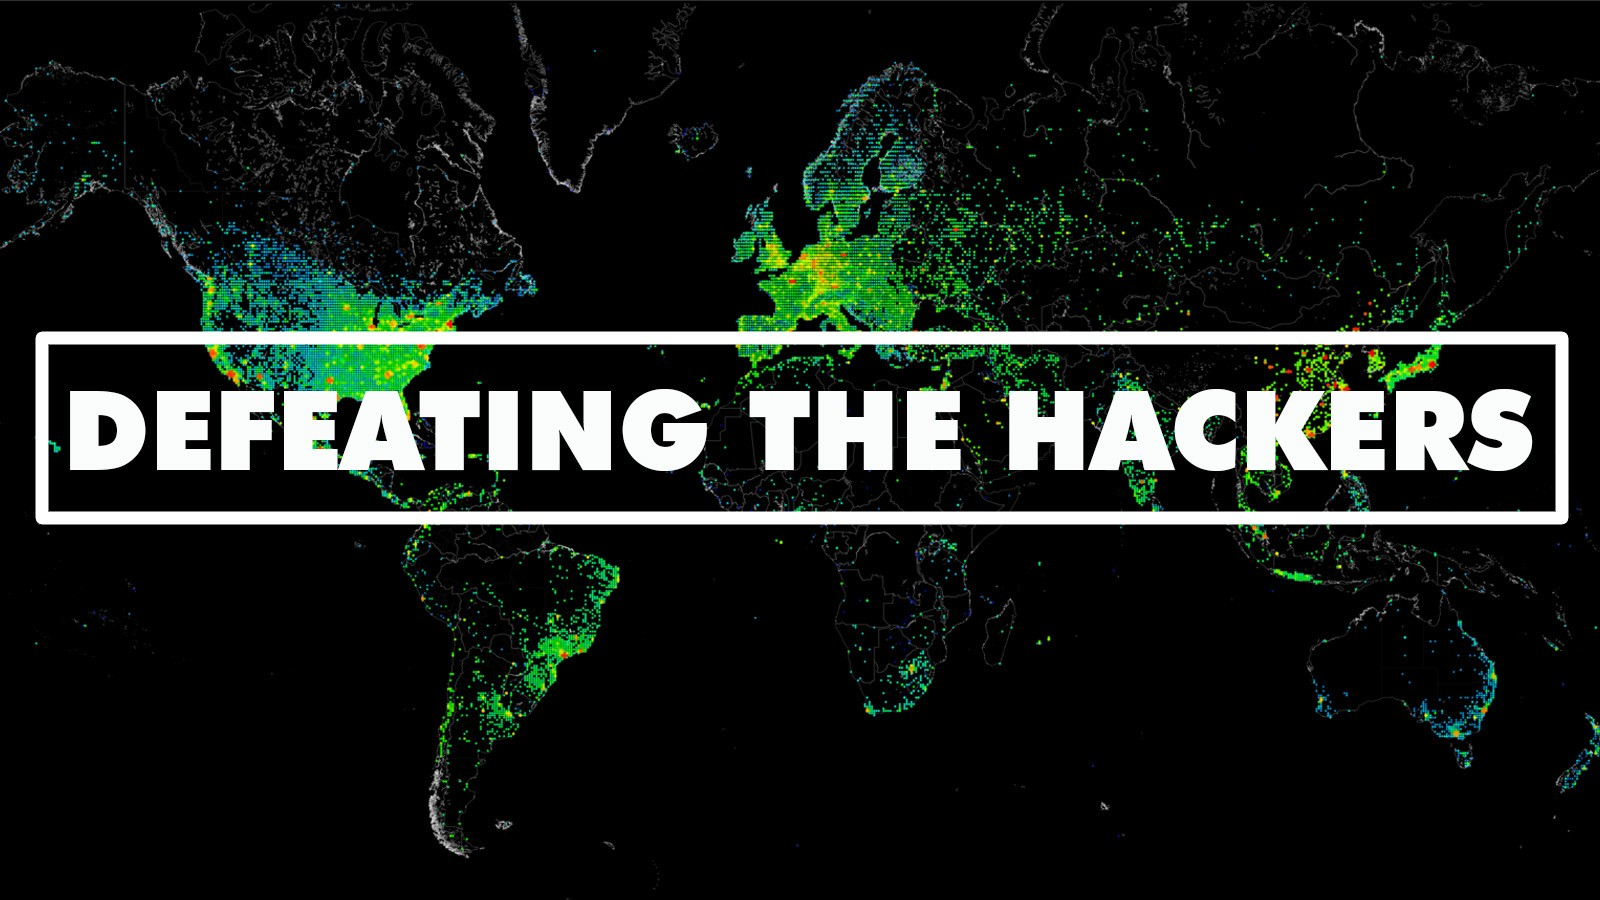 Defeating the hackers